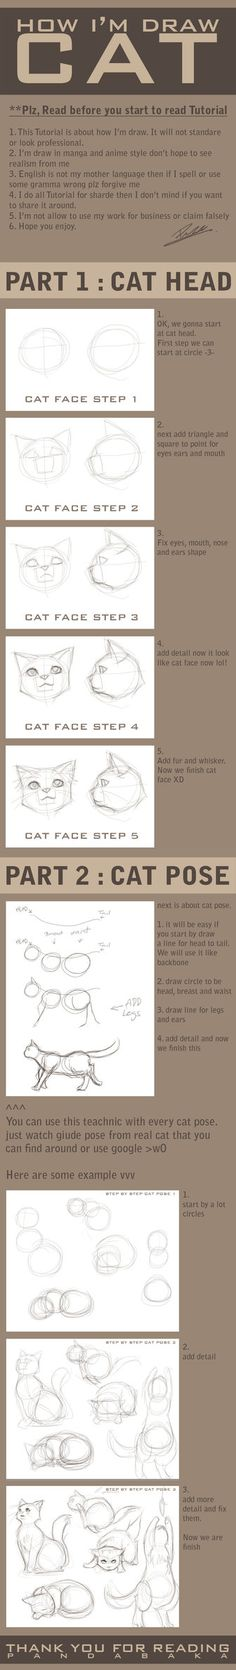 how I am draw cat by pandabaka on deviantART